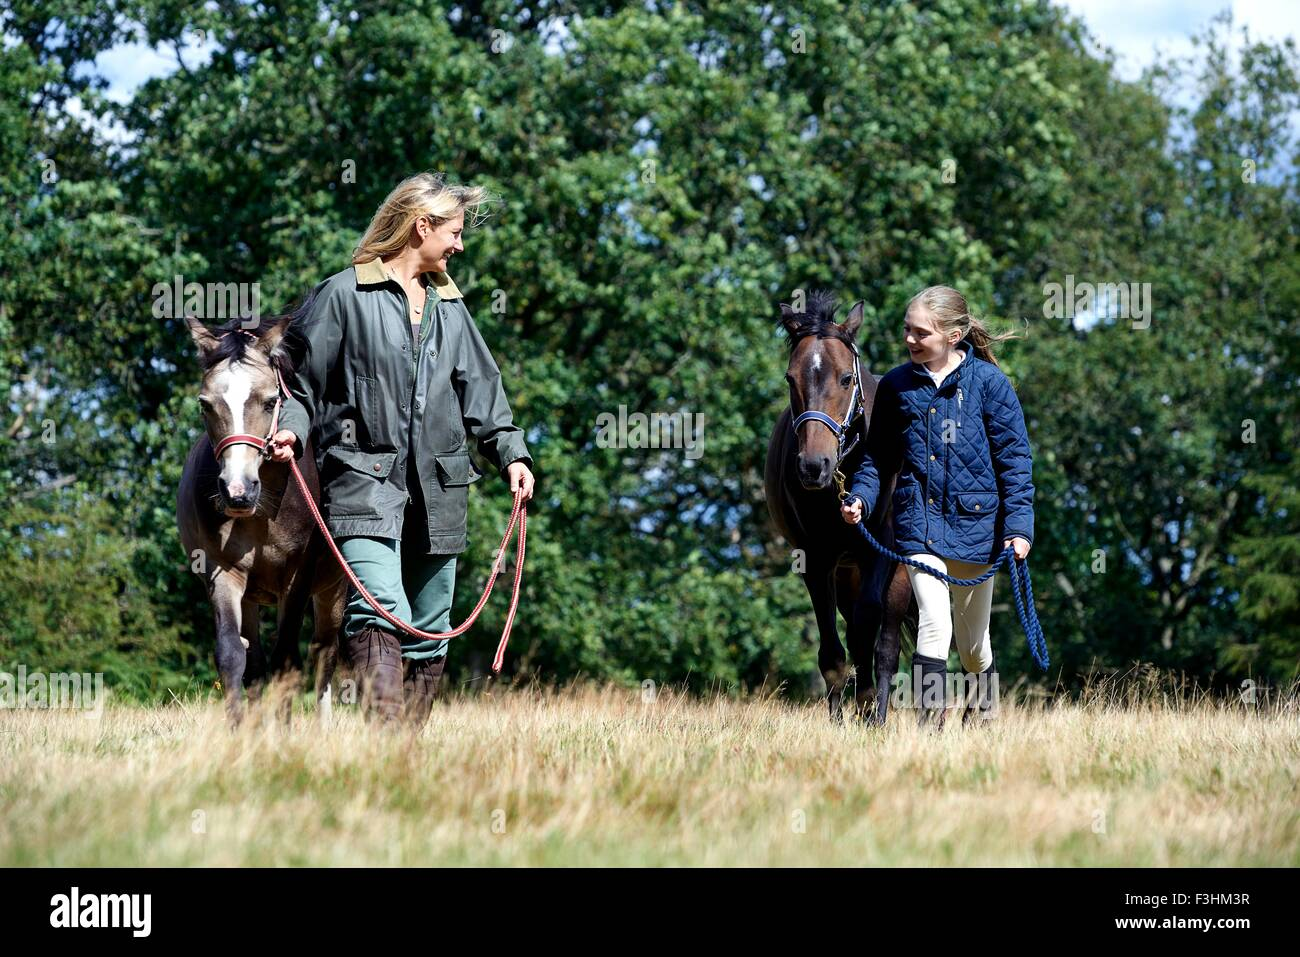 Mother and daughter walking horses in field - Stock Image